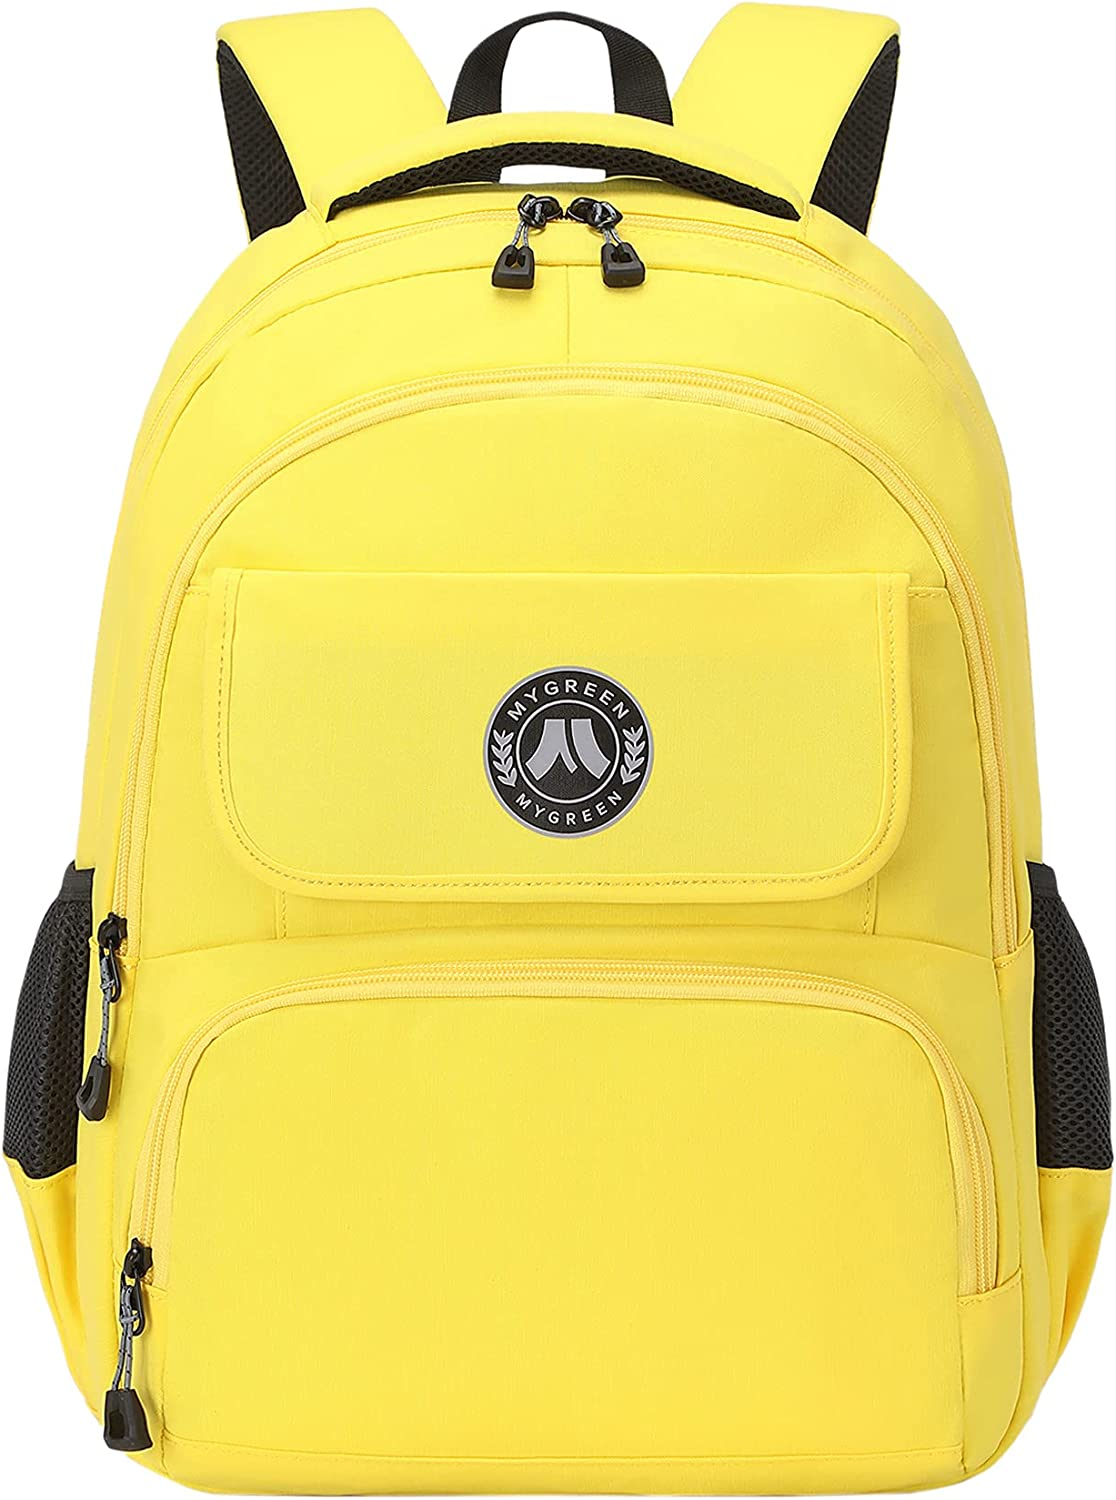 Mygreen Laptop Backpack Large Computer 15.6 Super popular specialty free shipping store up Fits to